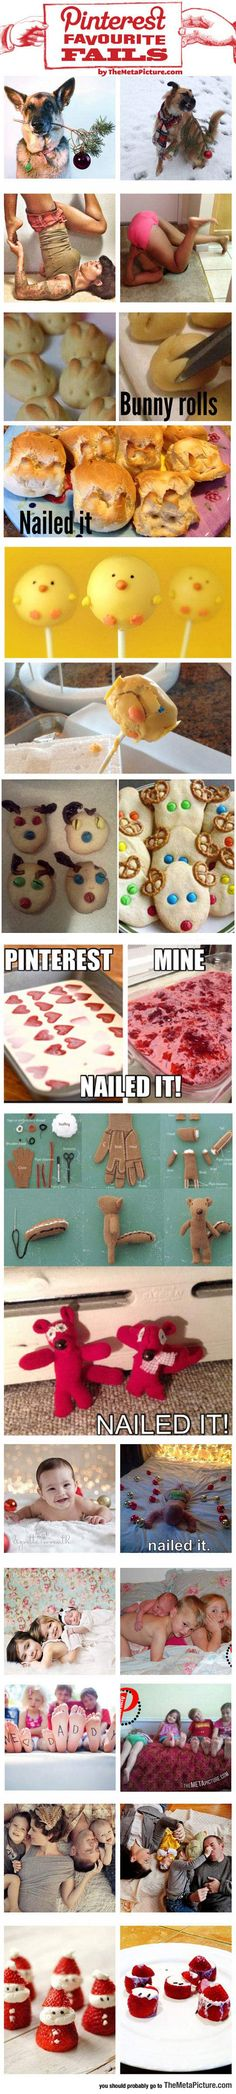 Pinterest gone wrong